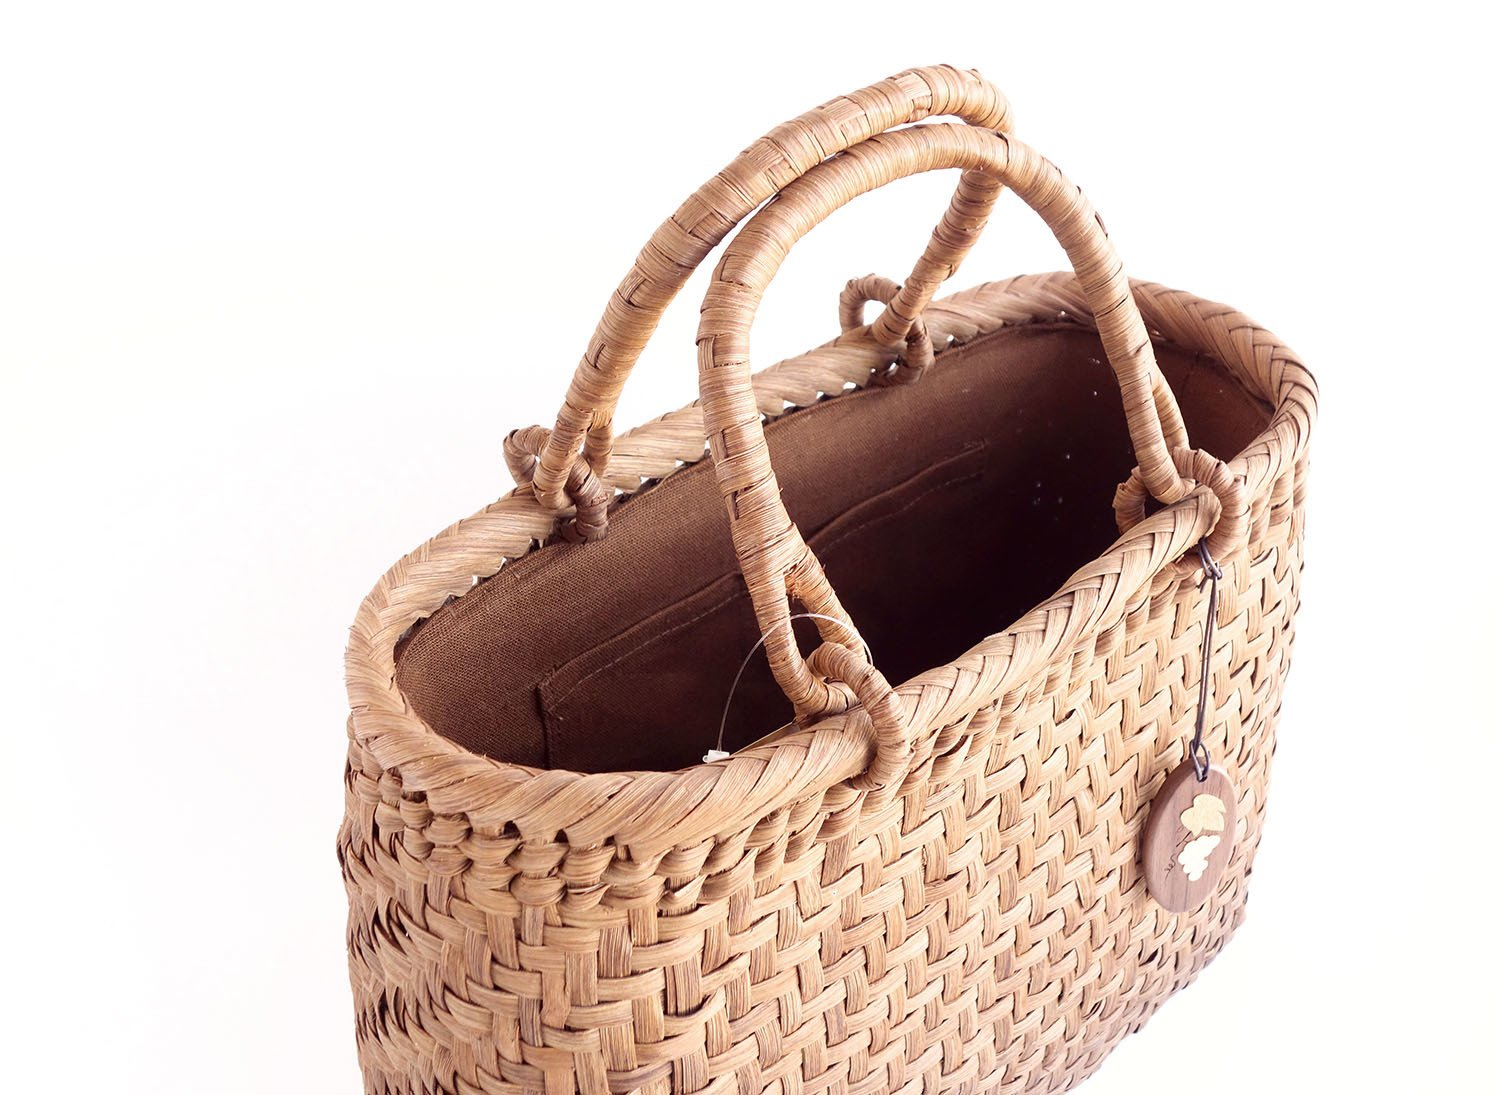 Yamako Mountain Grape Basket Handbag with Inner Cloth 88046 by Yamako (Image #5)